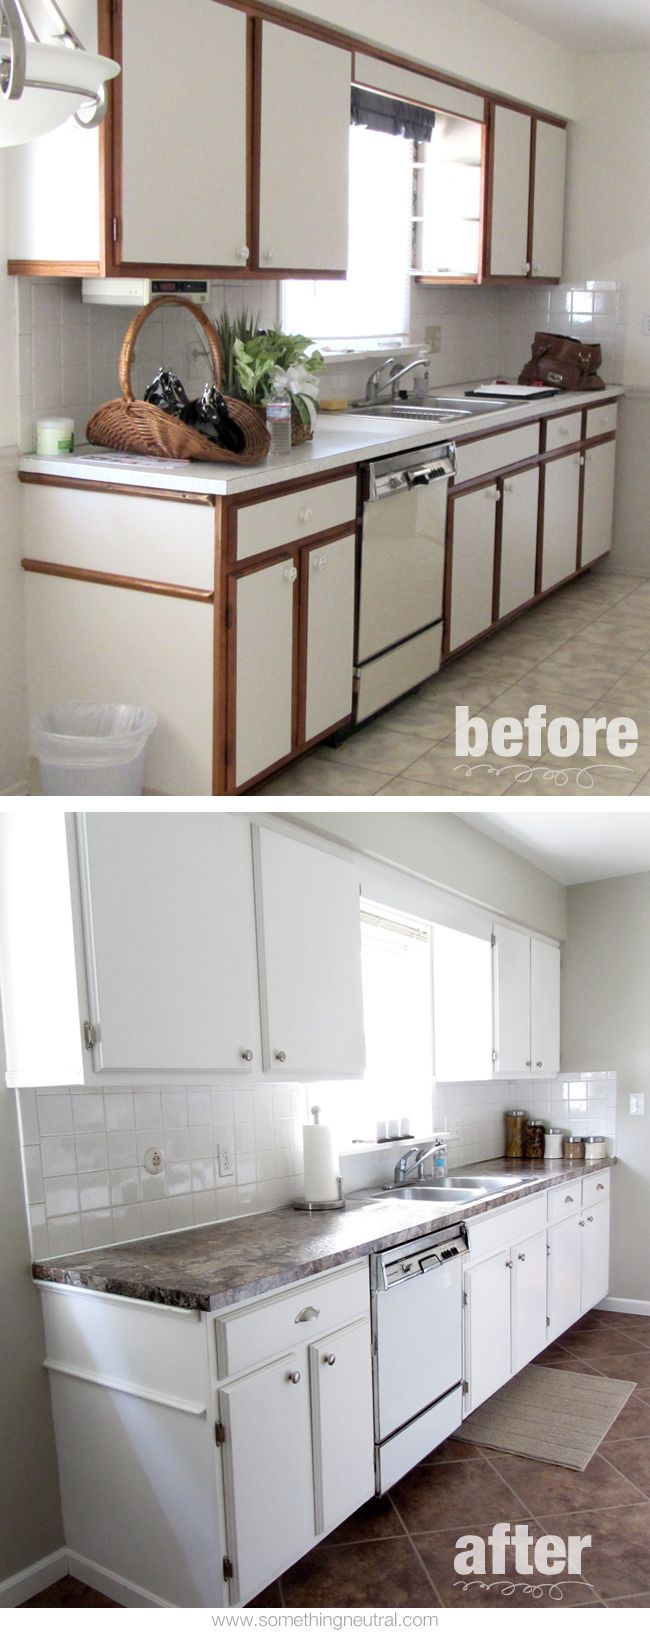 Kitchen Cabinet Laminate Veneer Paint Veneer Kitchen Cabinets White 15542520170422 Ponyiexnet